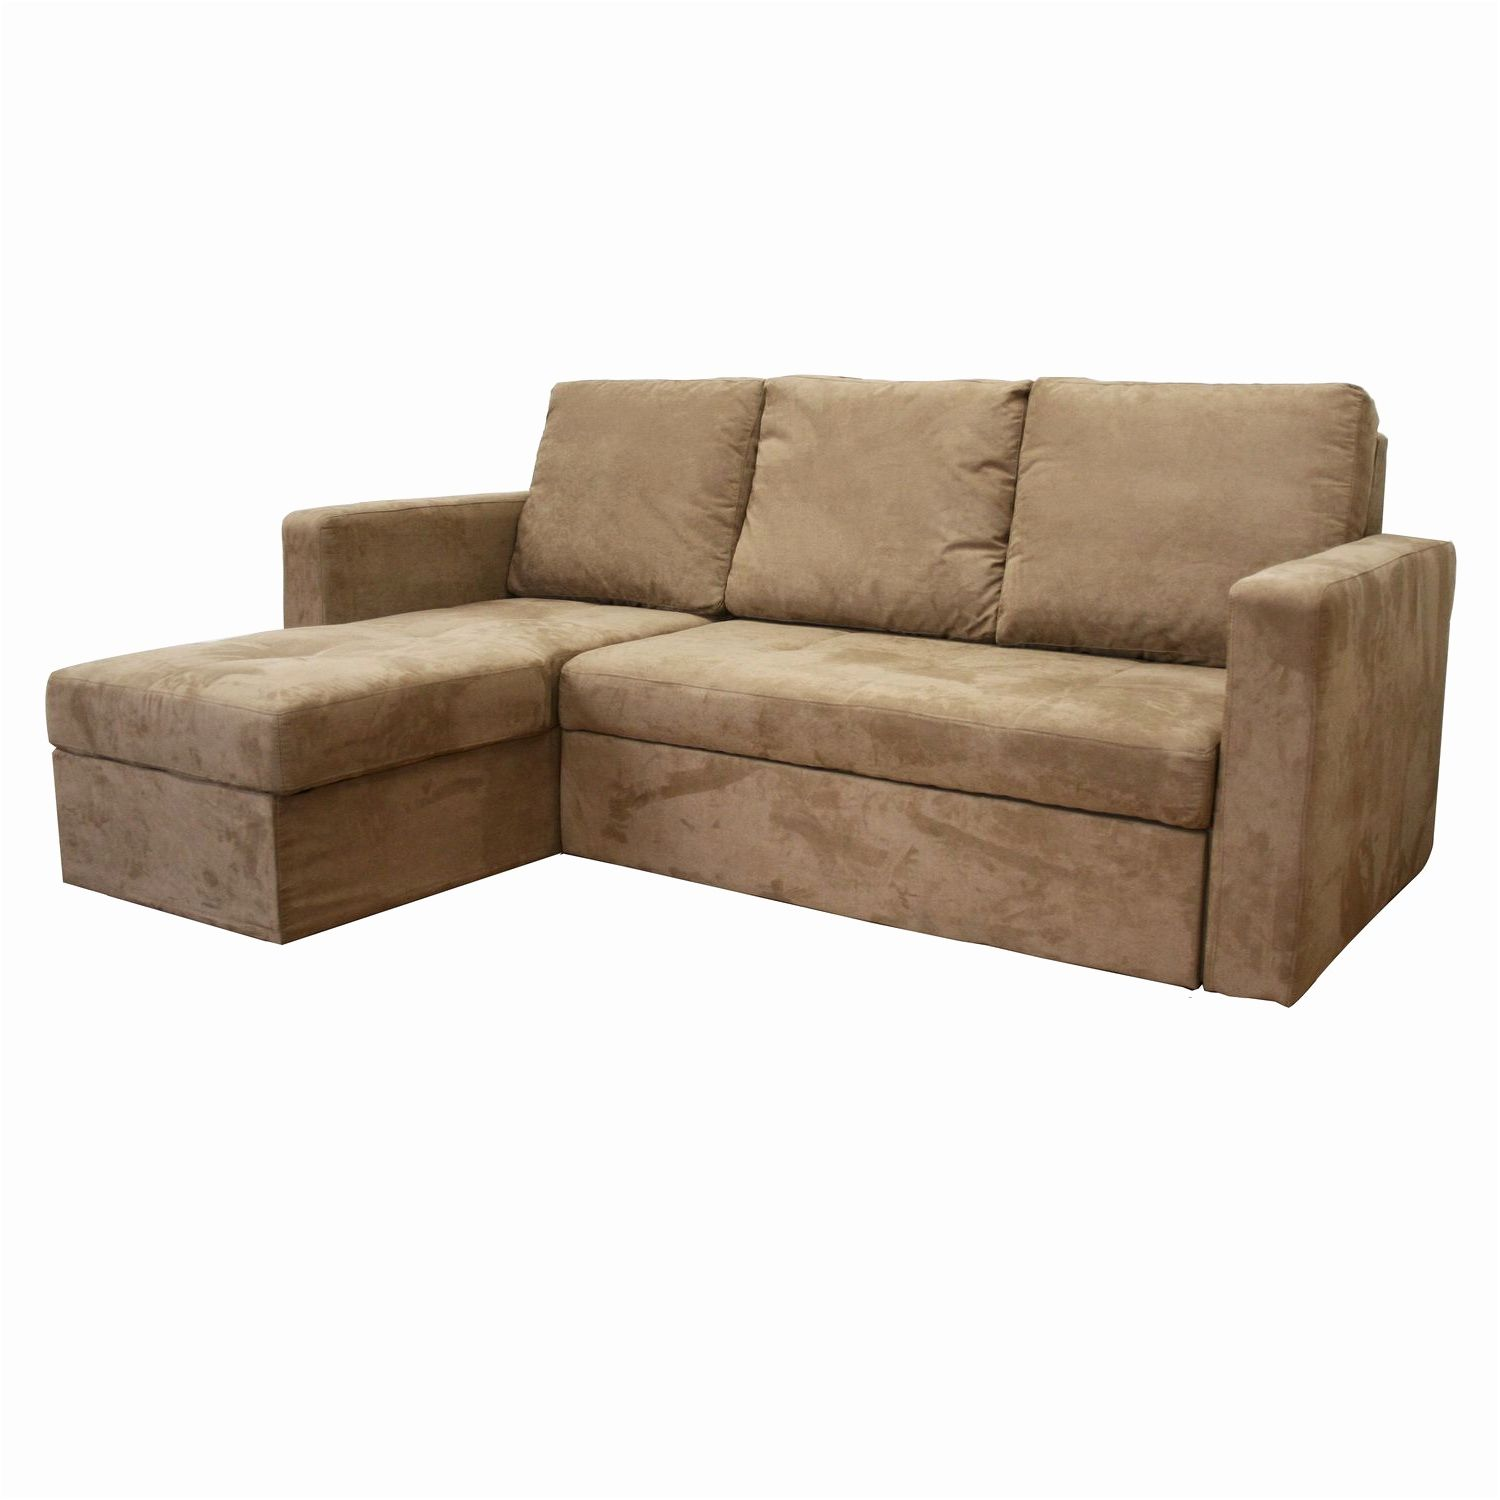 sears futon sofa bed sleeper chaise lounge new inspiration modern design ideas